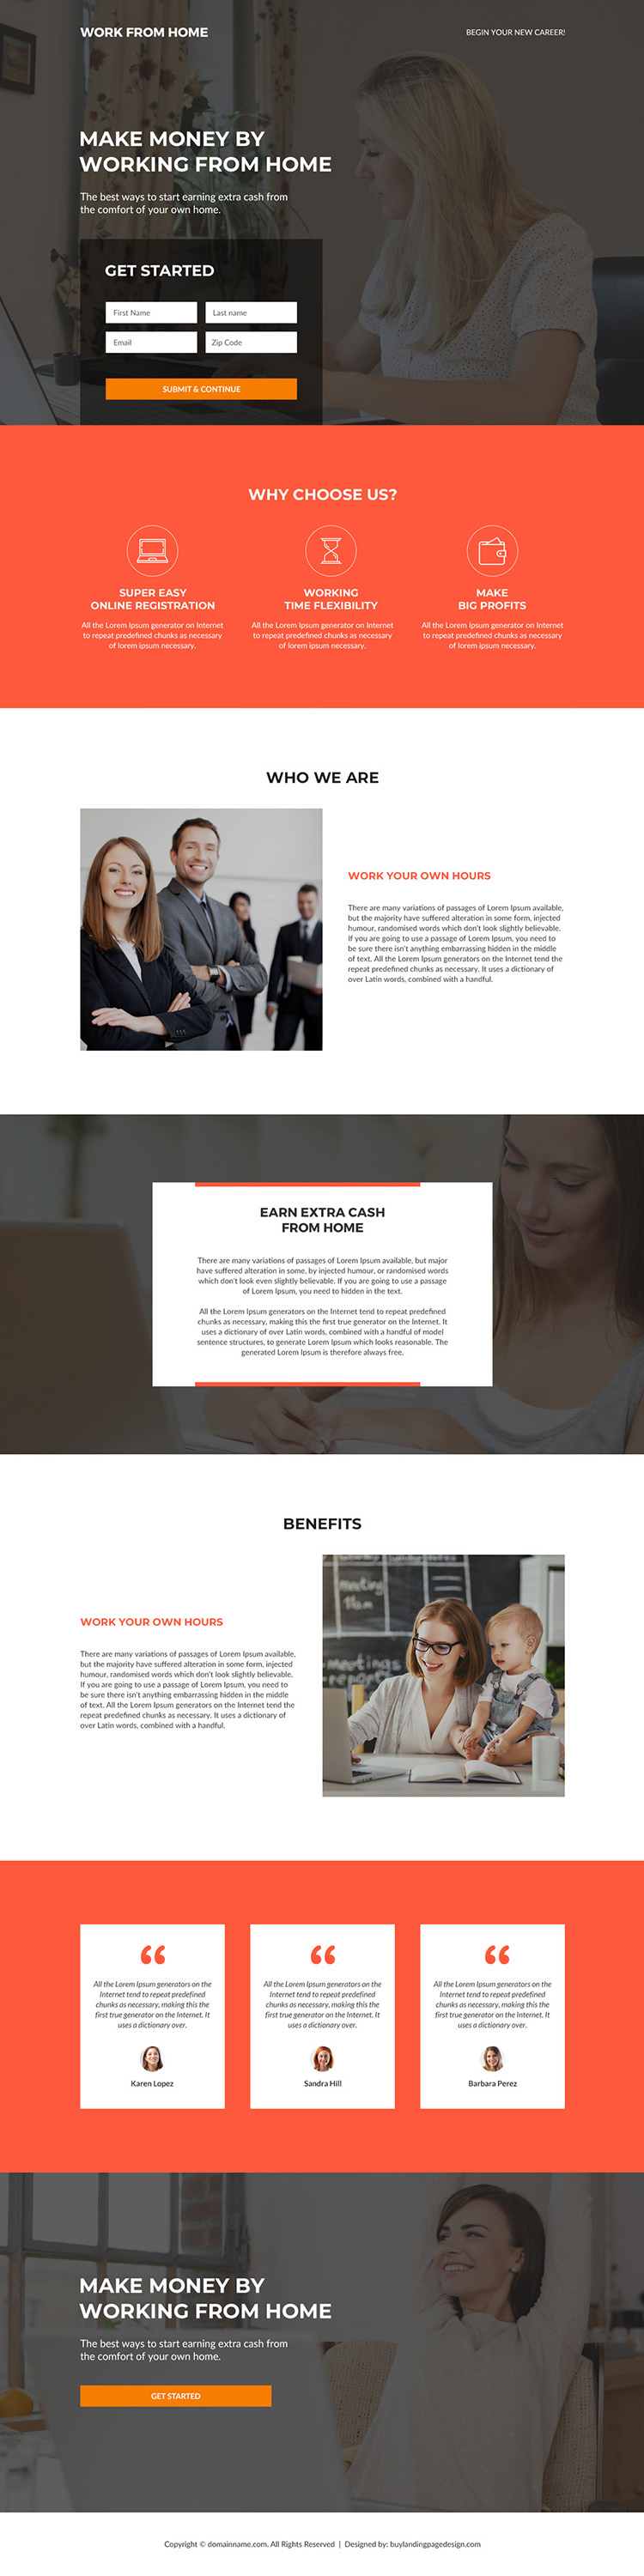 work from home business responsive landing page design